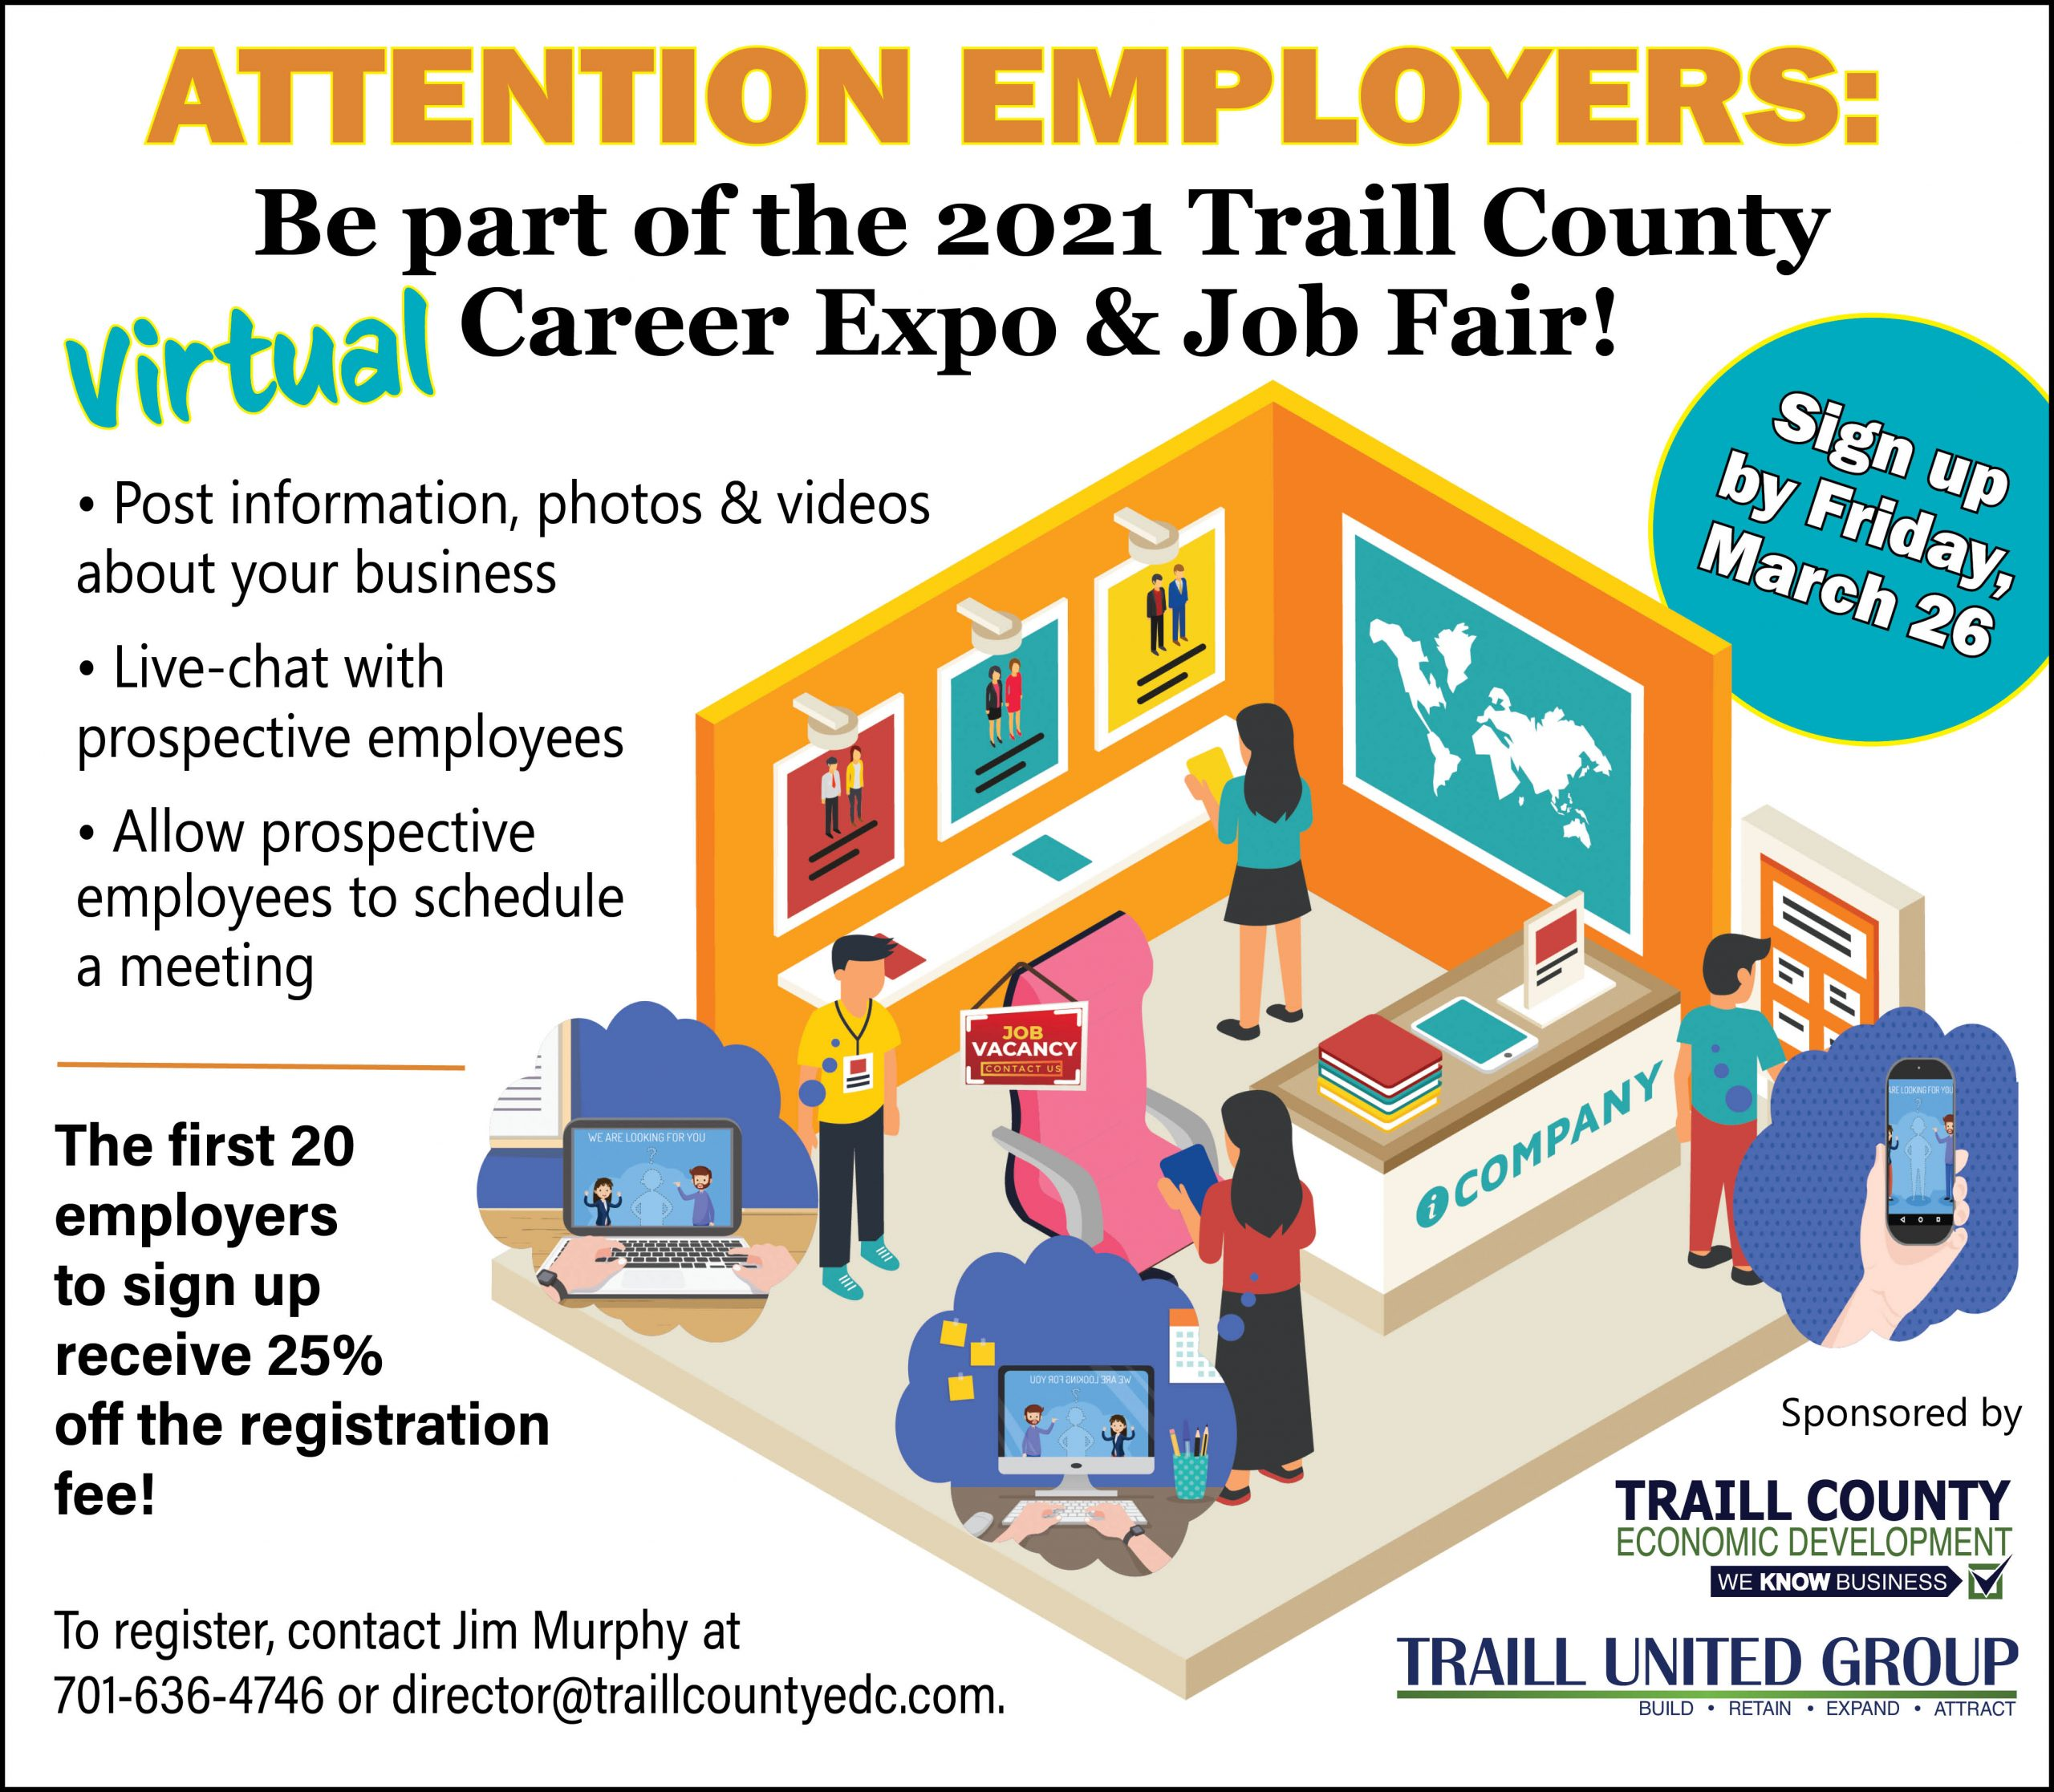 2021 Virtual Career Expo & Job Fair